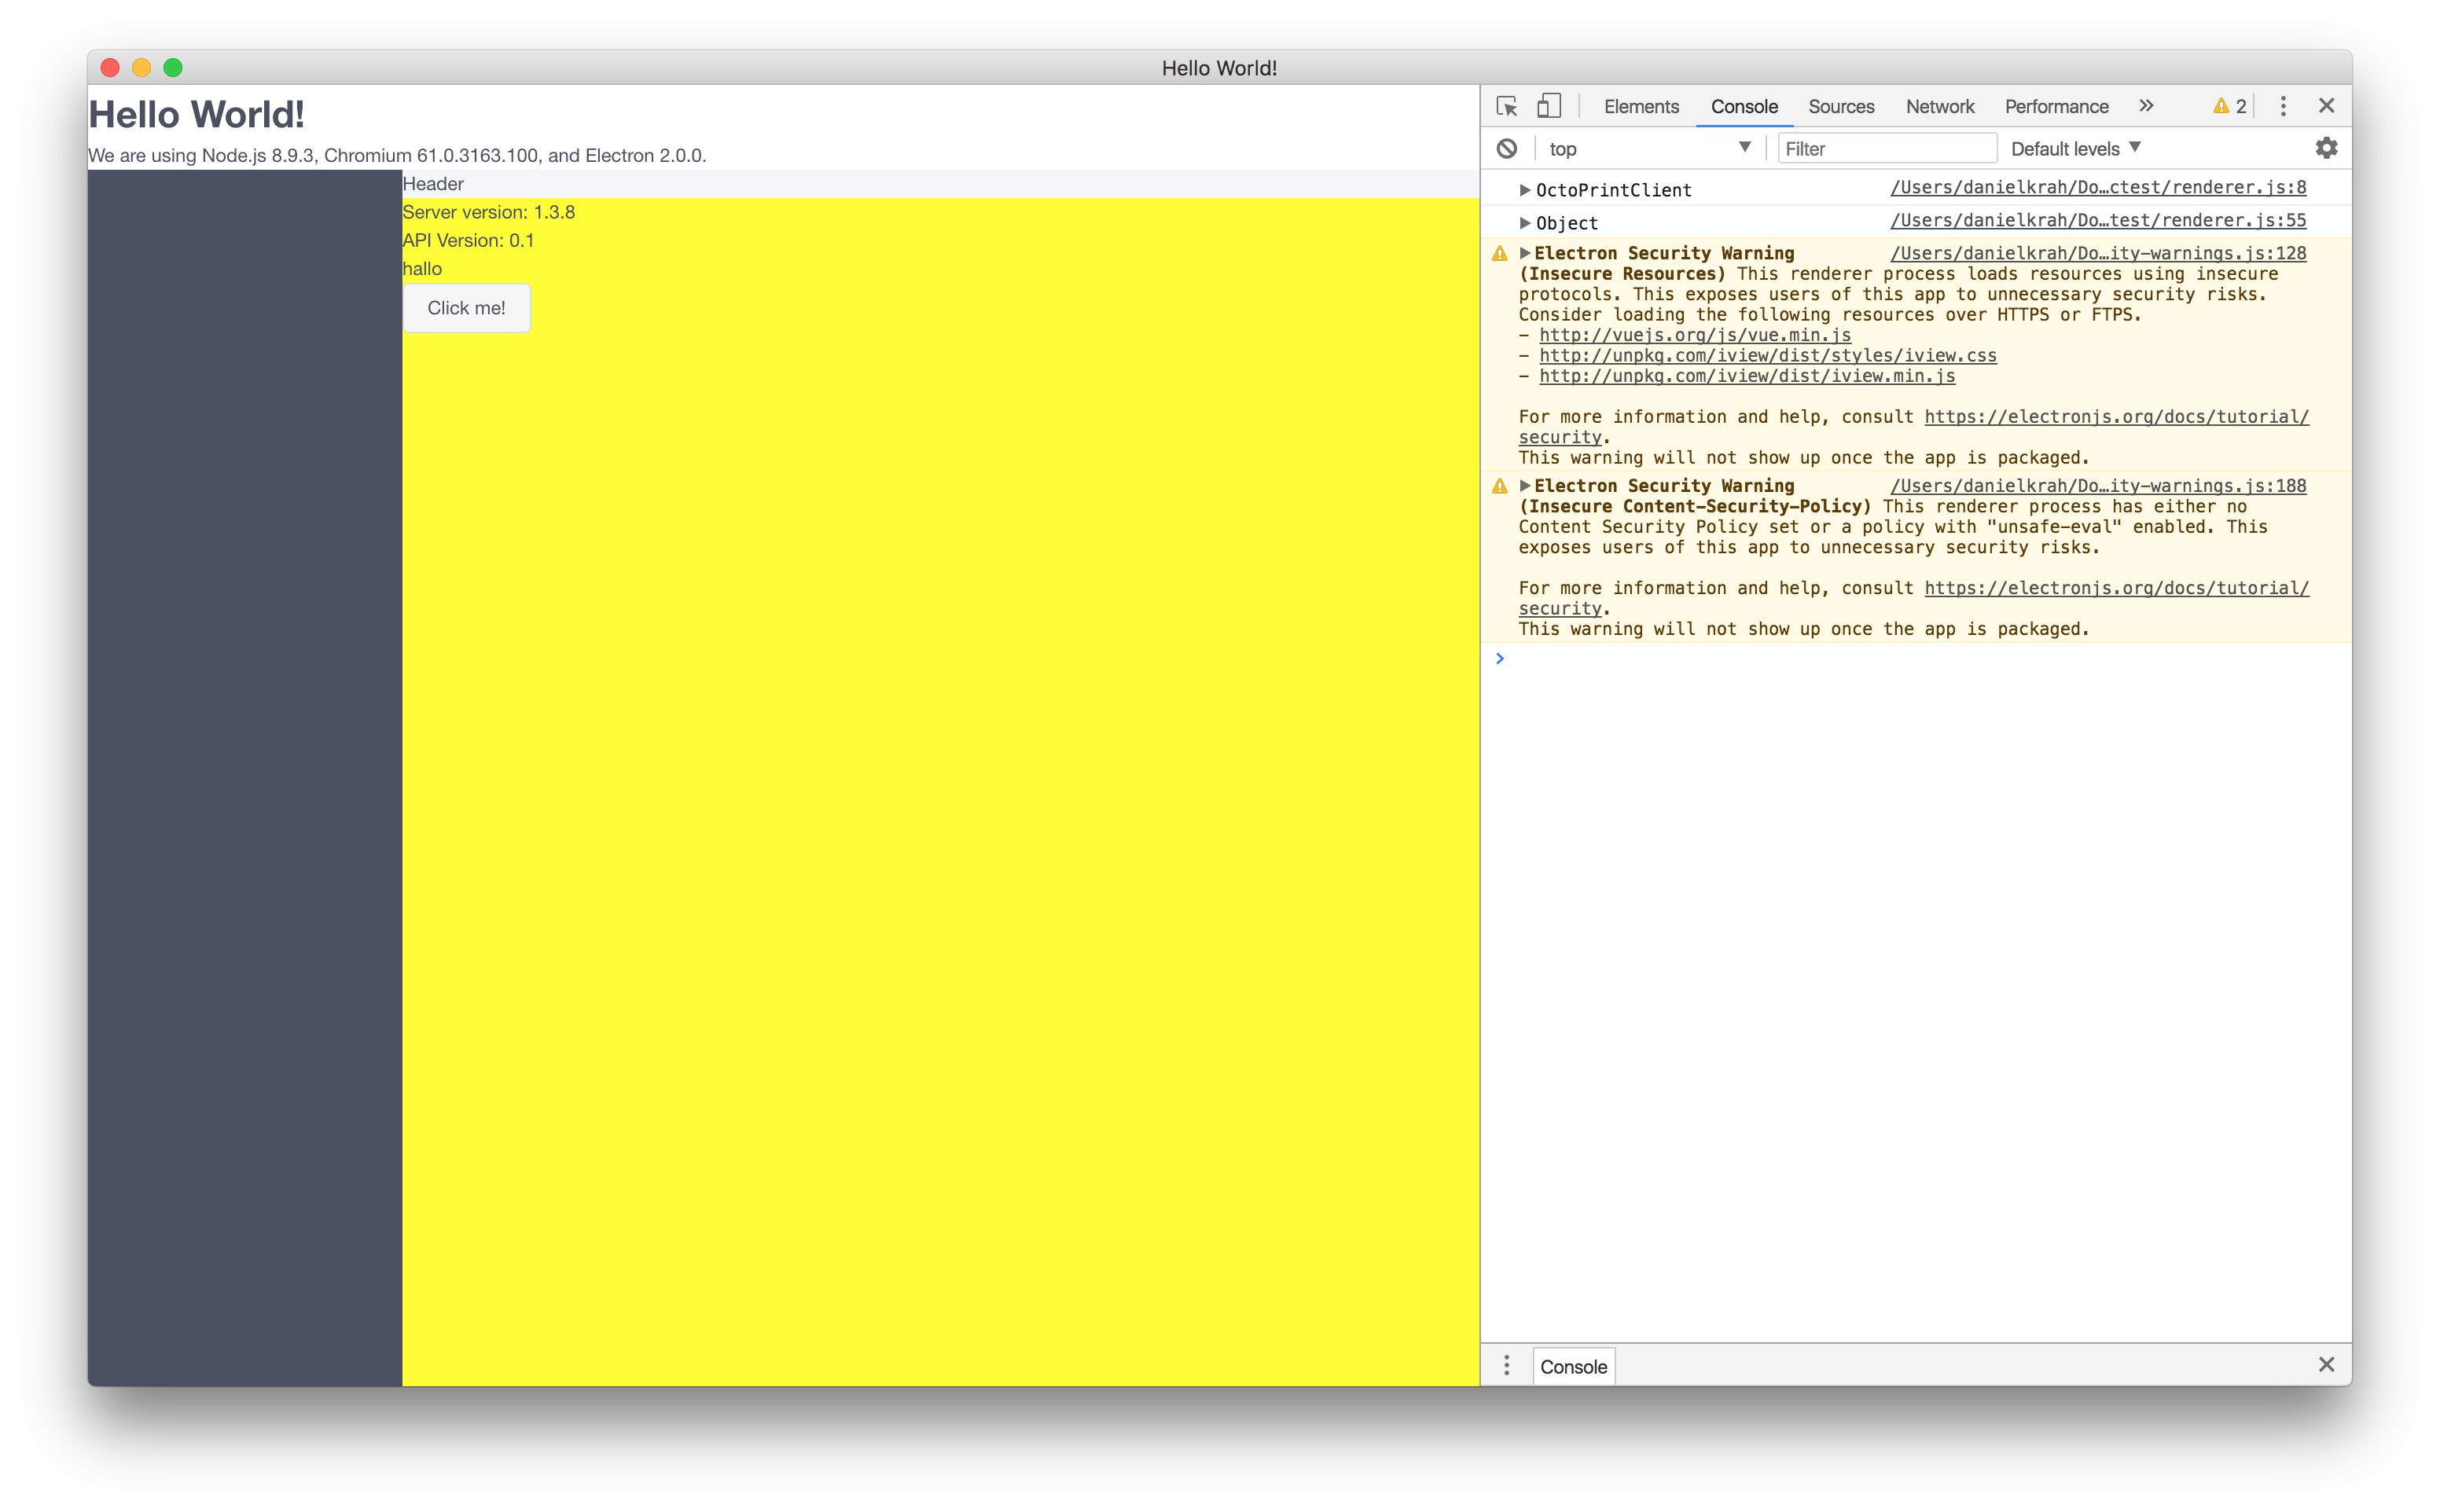 Did some work on Printview (which is not developed by the